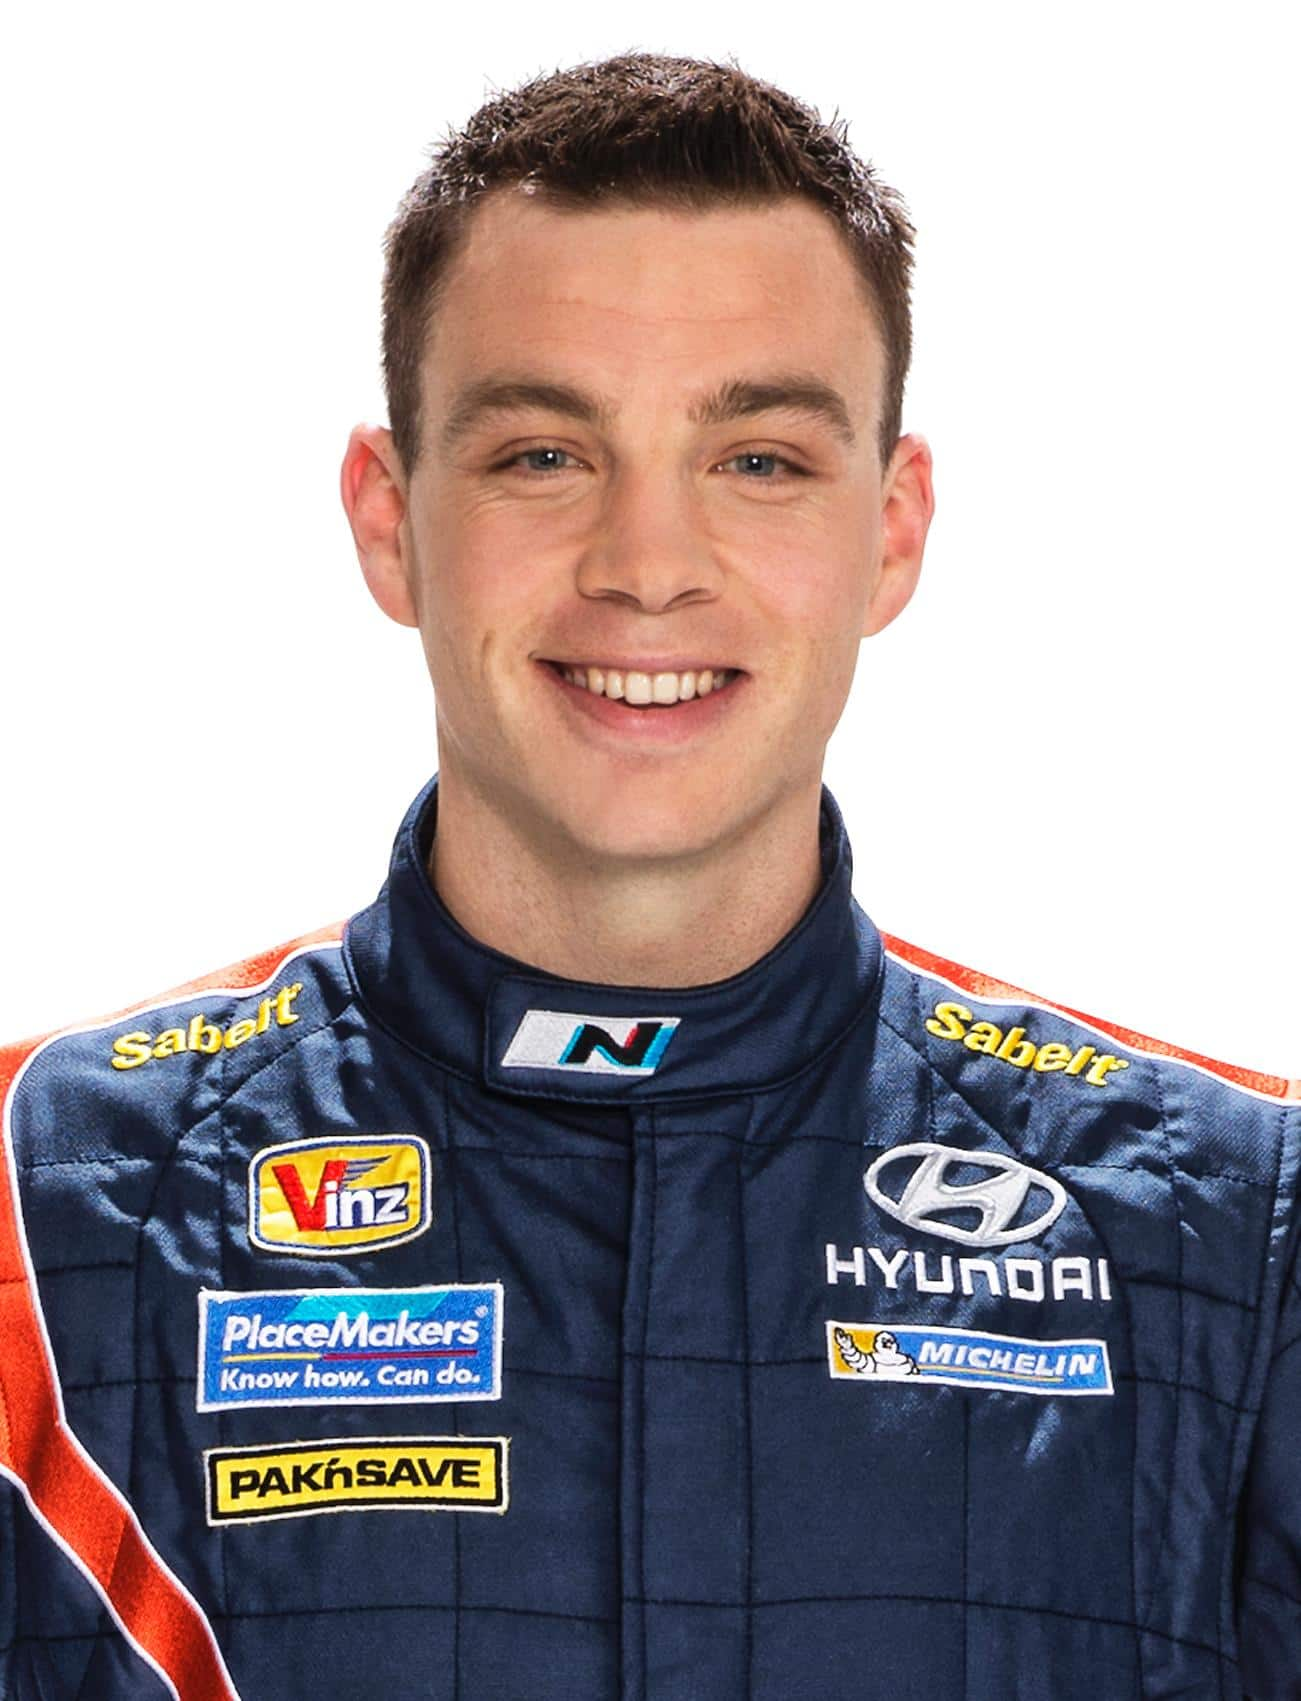 Hayden Paddon confirmed for expanded WRC role with Hyundai Motorsport in 2015